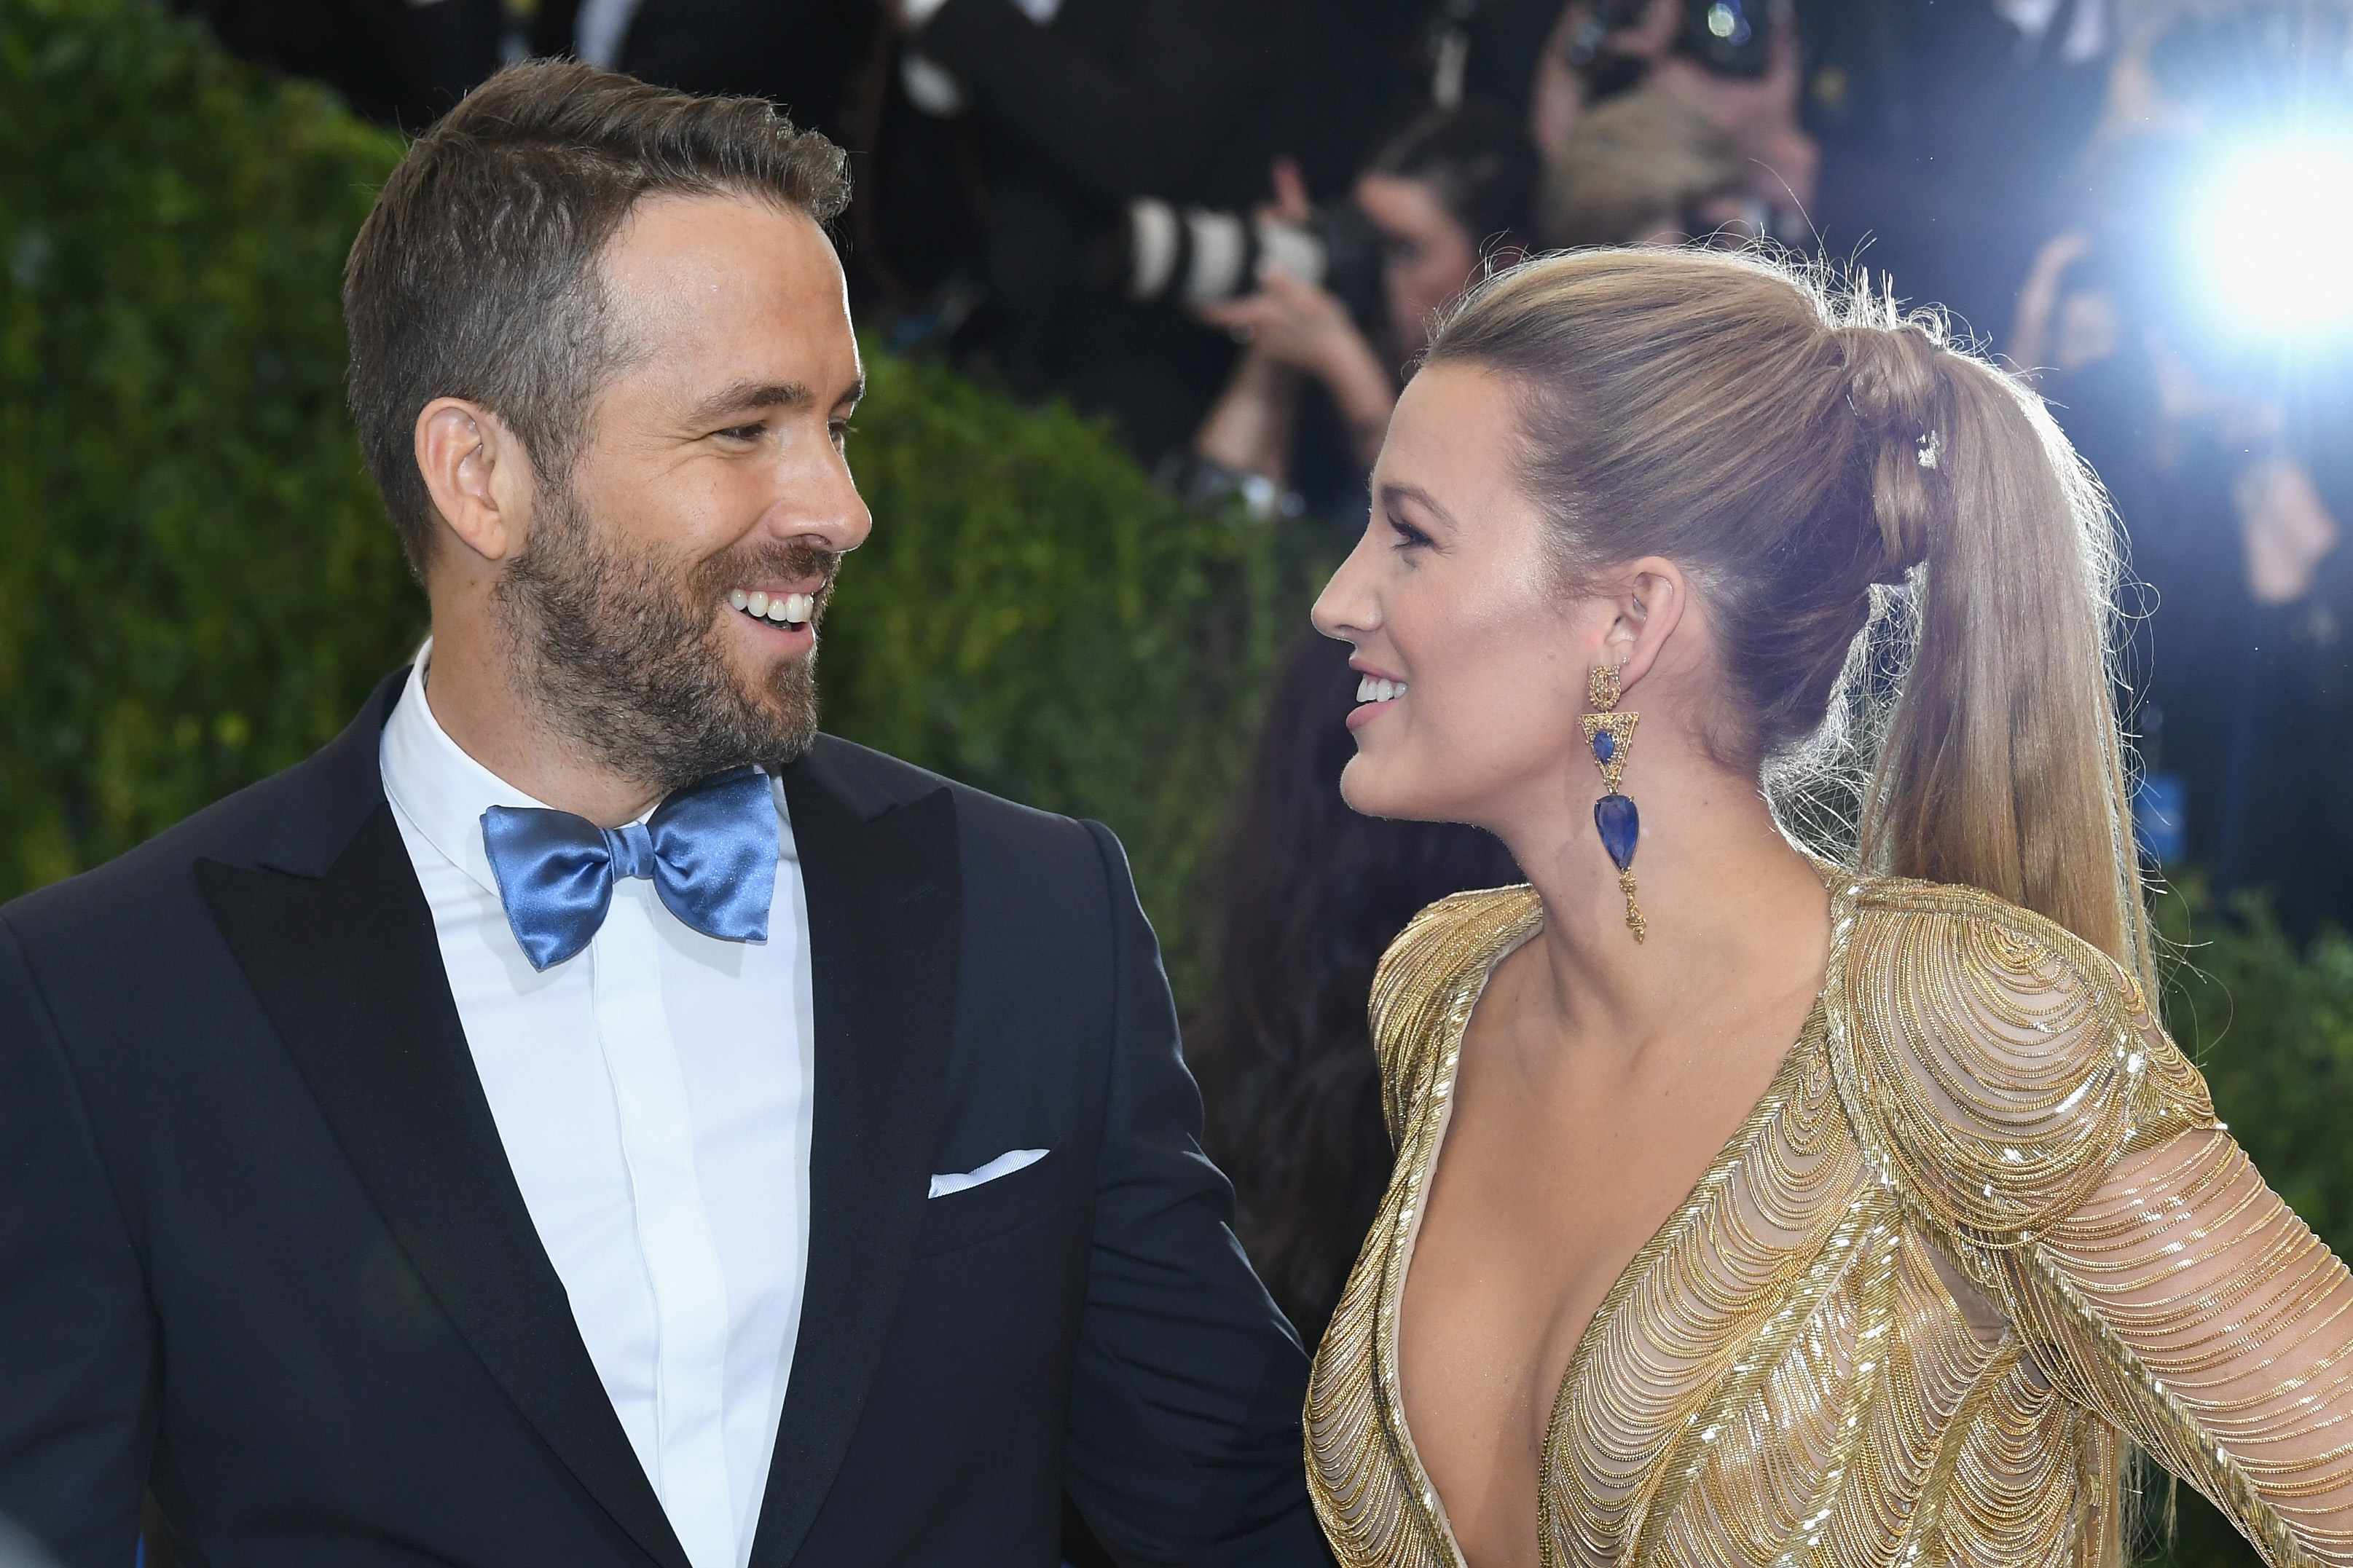 NEW YORK, NY - MAY 01:  Ryan Reynolds (L) and Blake Lively attend the  Rei Kawakubo/Comme des Garcons: Art Of The In-Between  Costume Institute Gala at Metropolitan Museum of Art on May 1, 2017 in New York City.  (Photo by Dia Dipasupil/Getty Images For Entertainment Weekly)